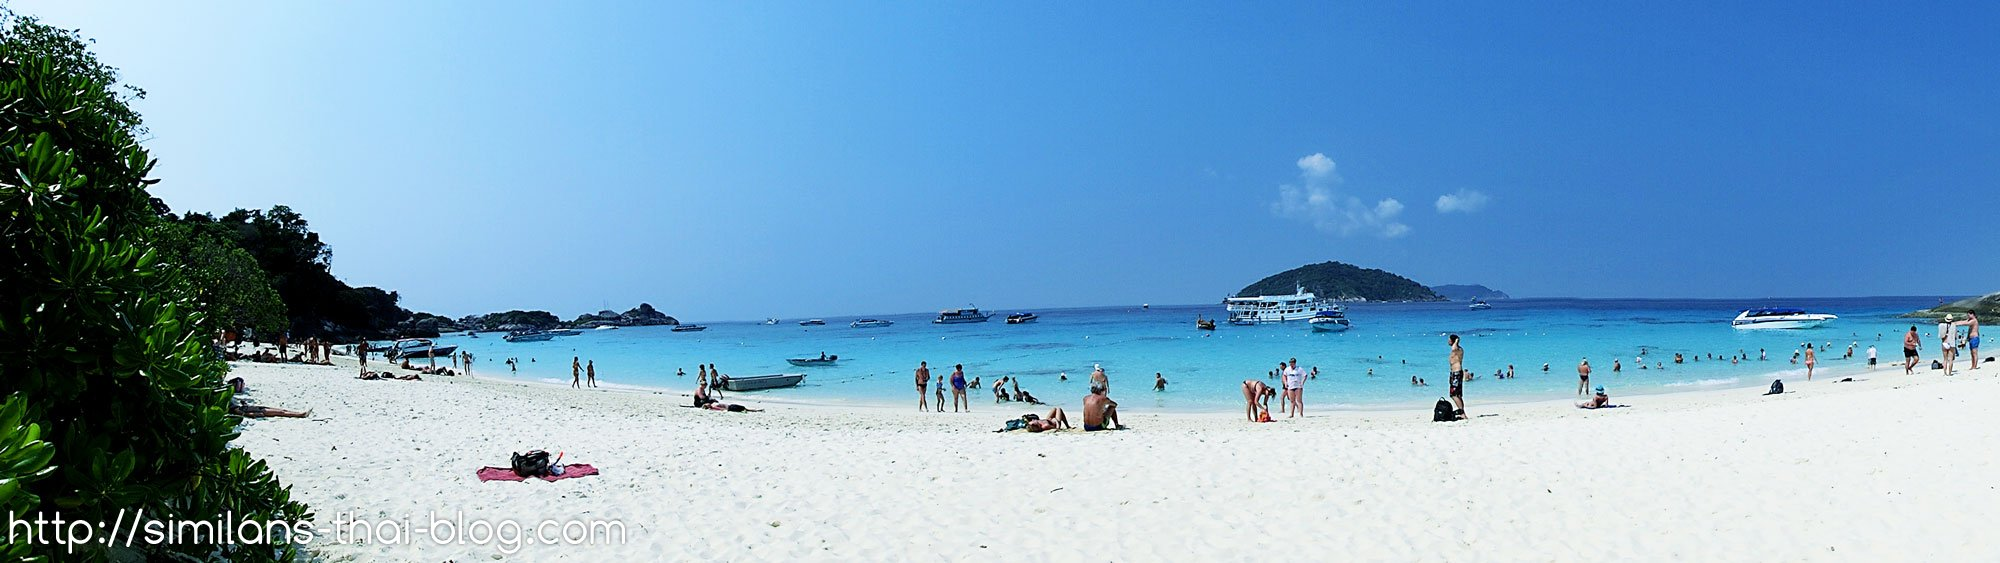 full-beach-on-similan-no-4